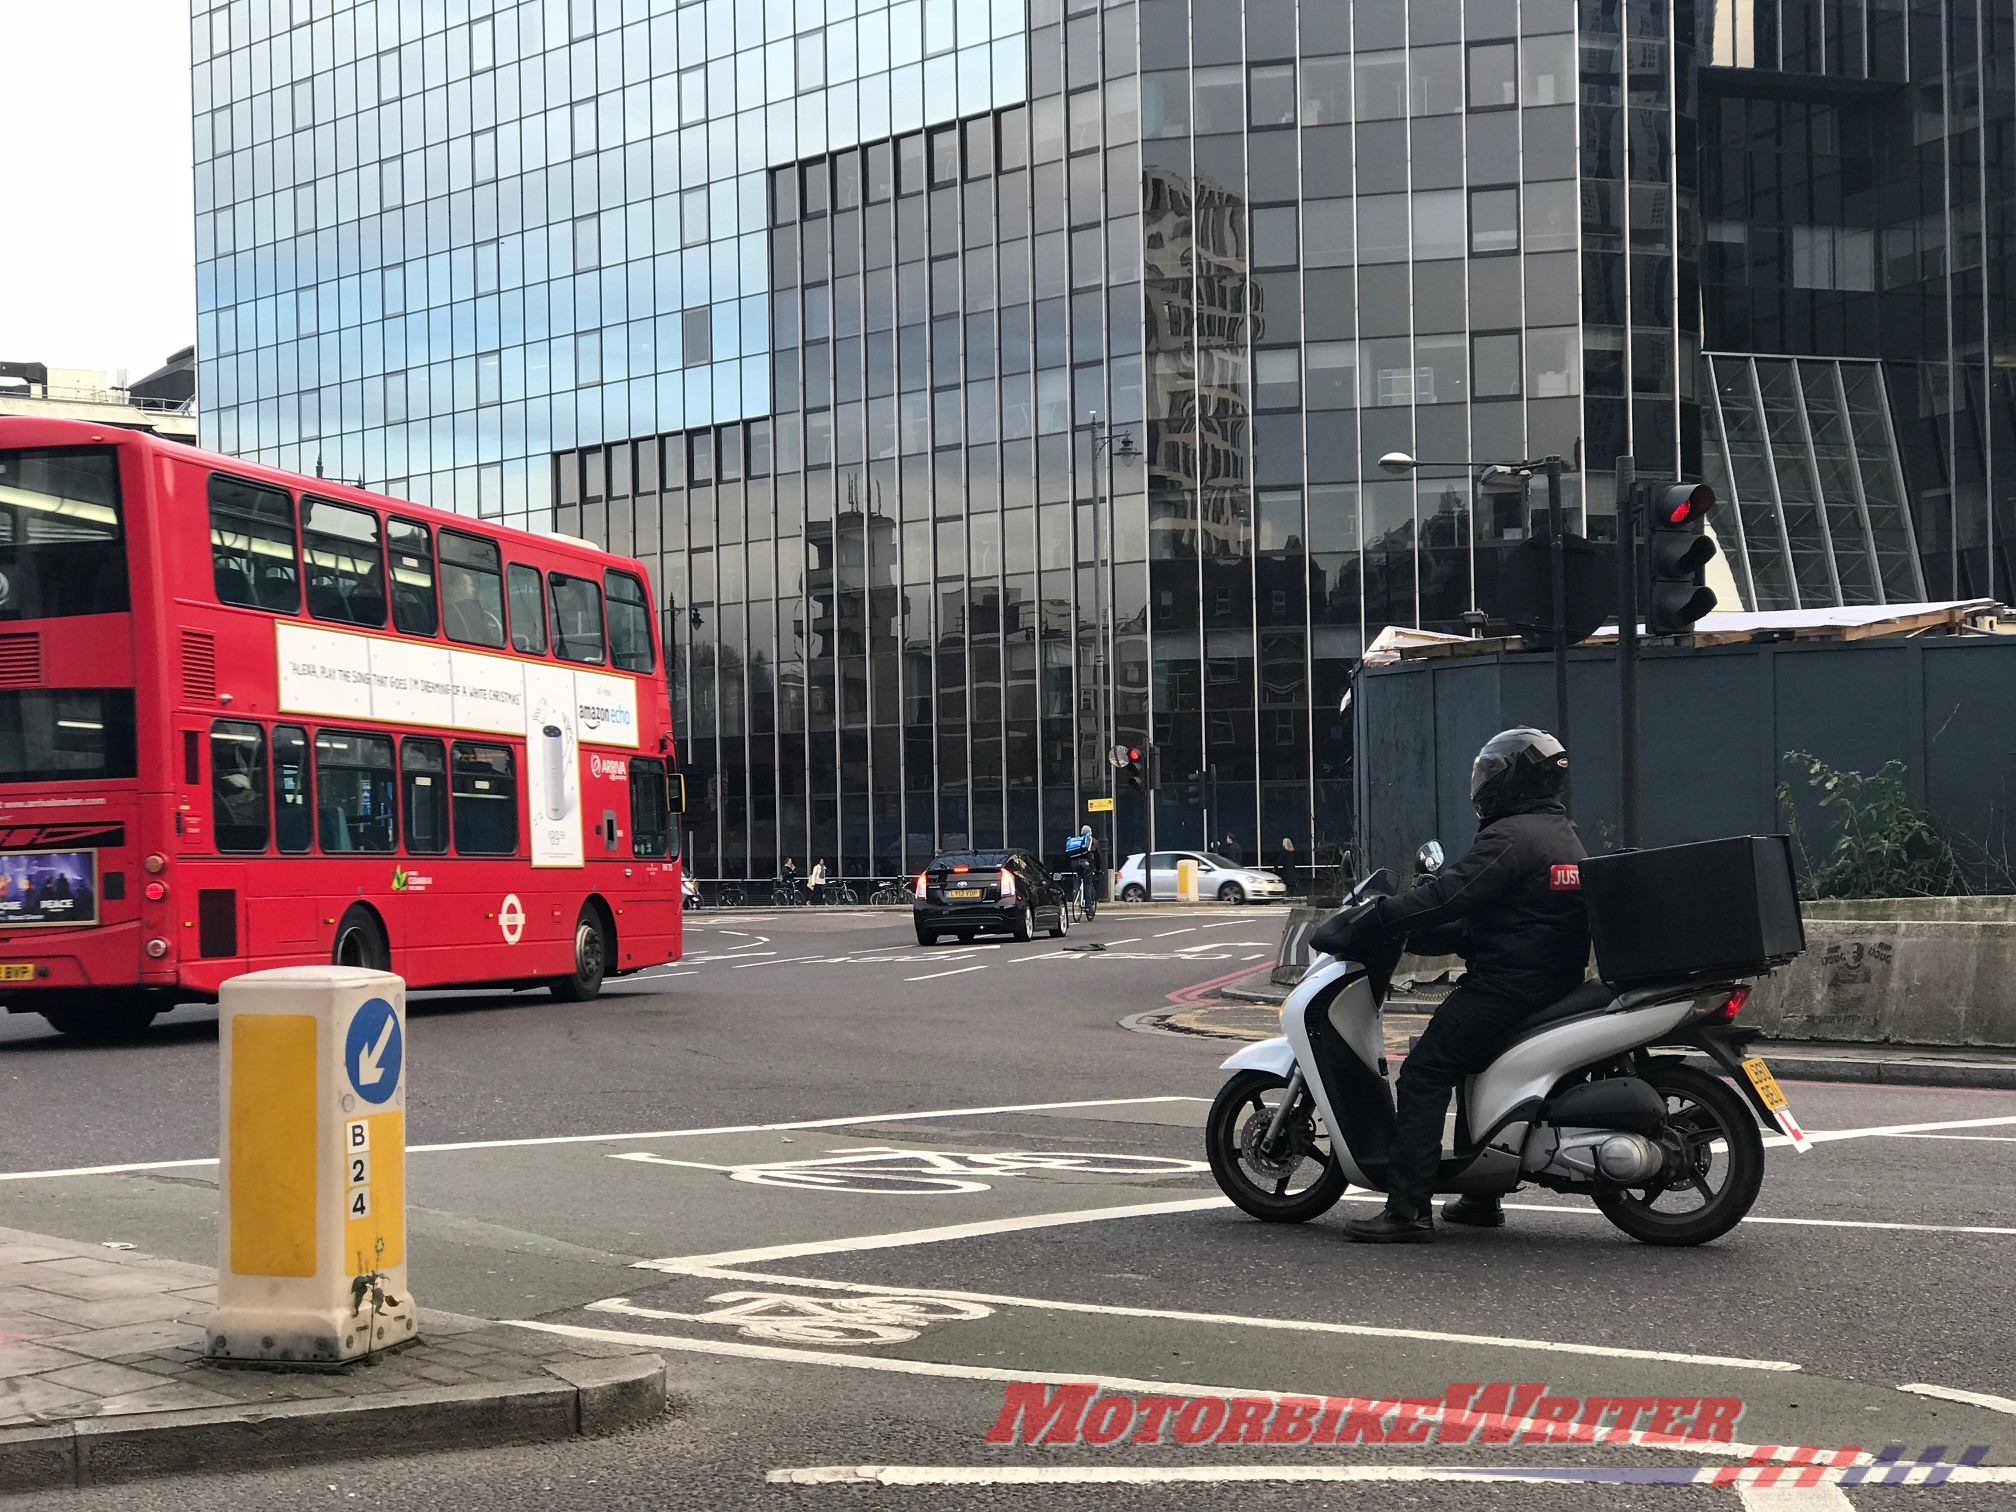 London roundabout has safe boxes for cyclists, but not motorcyclists or scooter riders